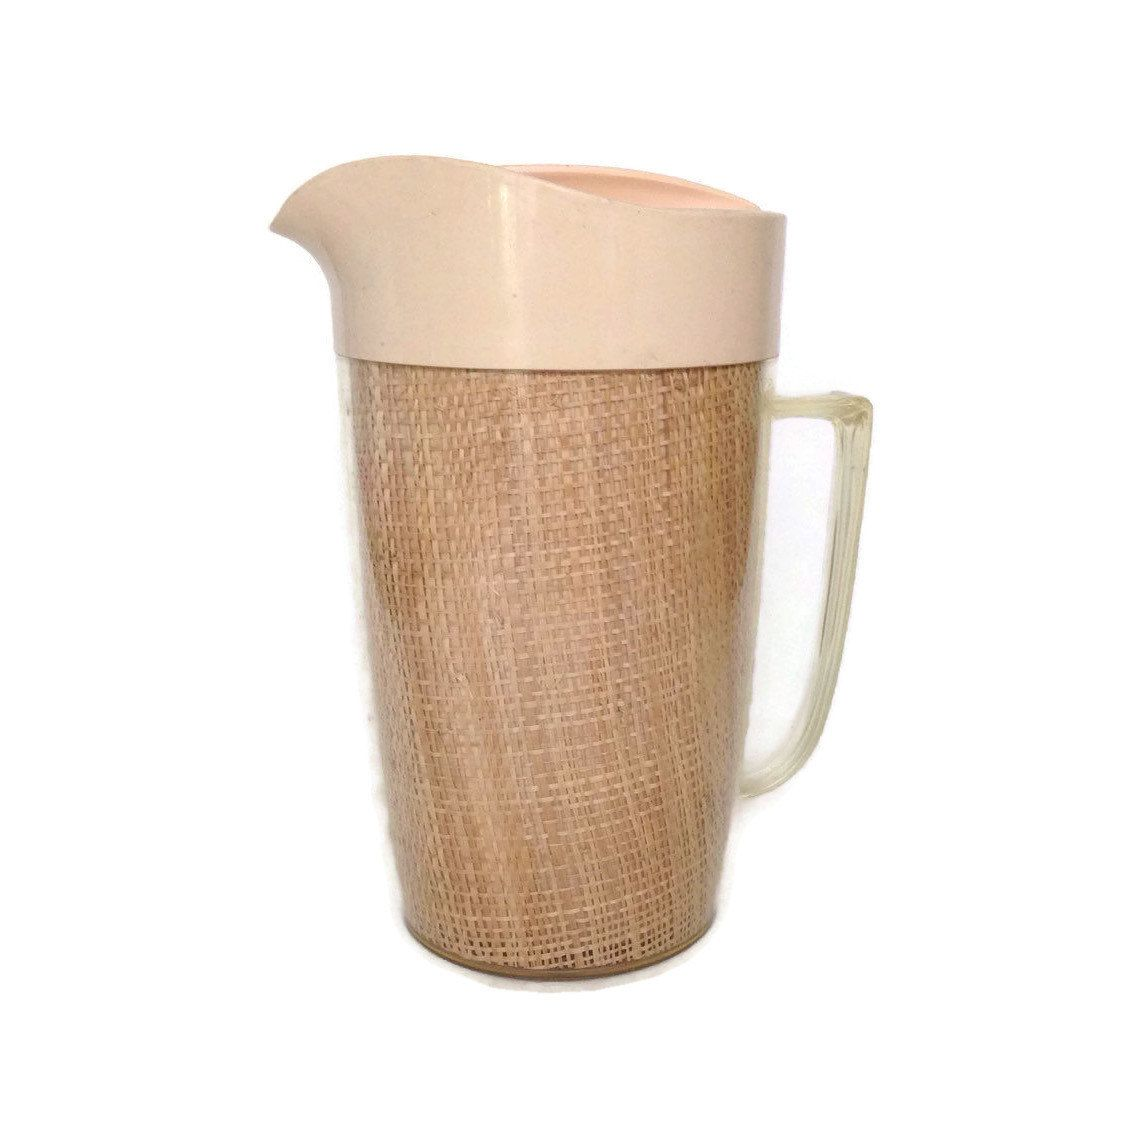 Raffia Ware Pitcher-Vintage Pitcher-Insulated Pitcher-Raffia Ware-Beige Plastic-Burlap Insulated Pitcher- Mid Century-Vintage Kitchen - pinned by pin4etsy.com